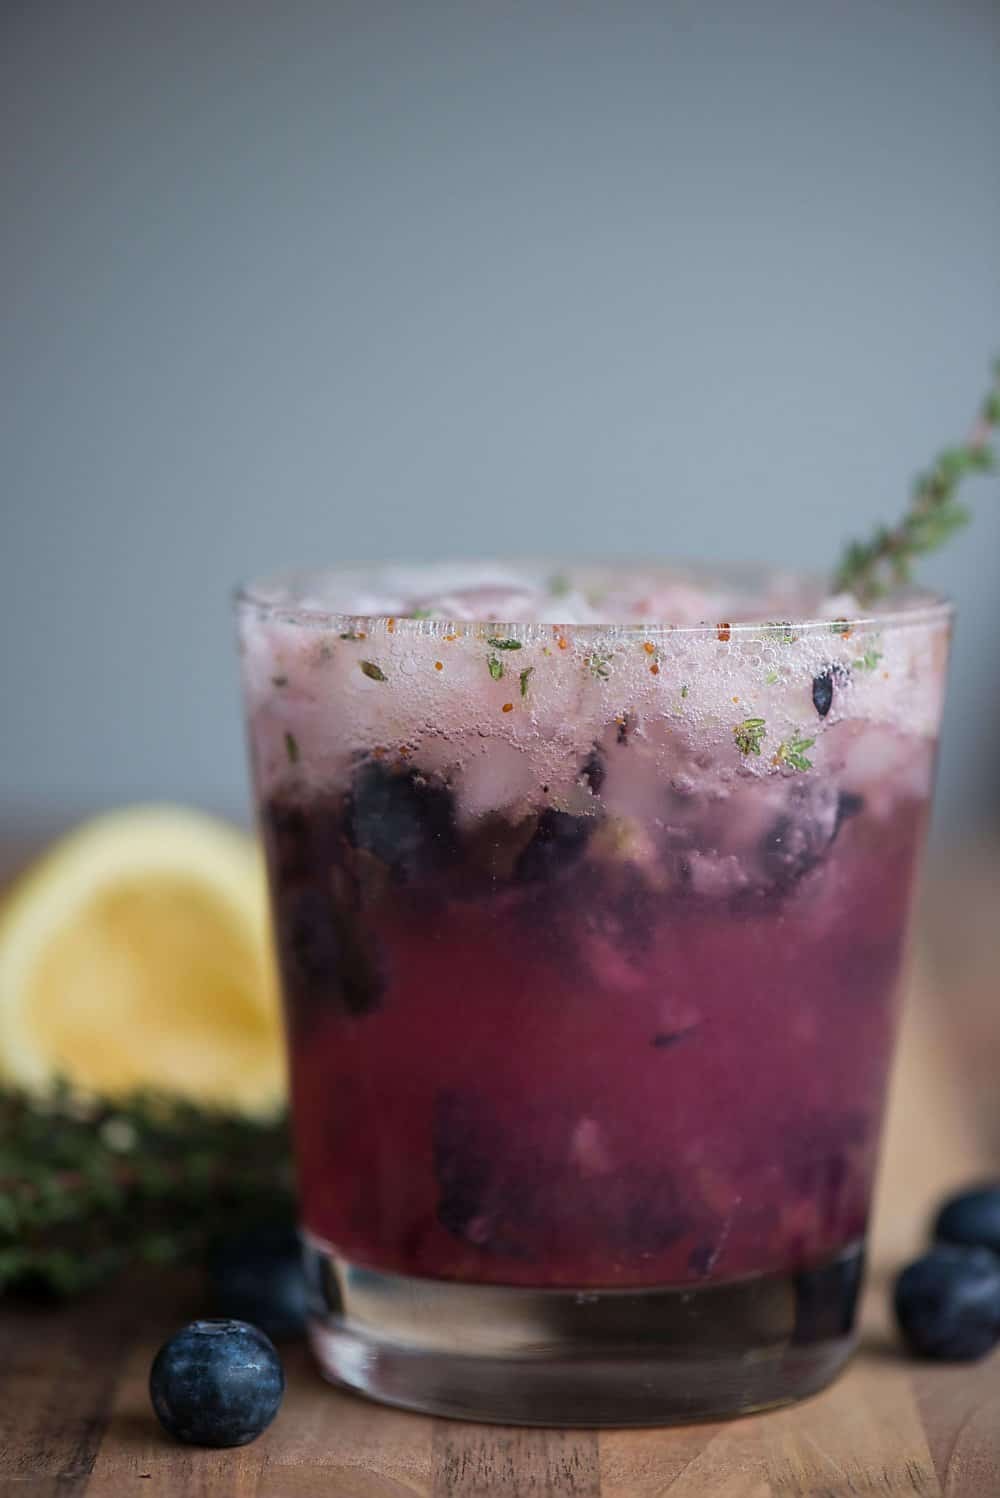 Summer cocktails don't get much easier than this tart, sweet, and refreshing Blueberry Thyme Crush Cocktail made with vodka or gin!